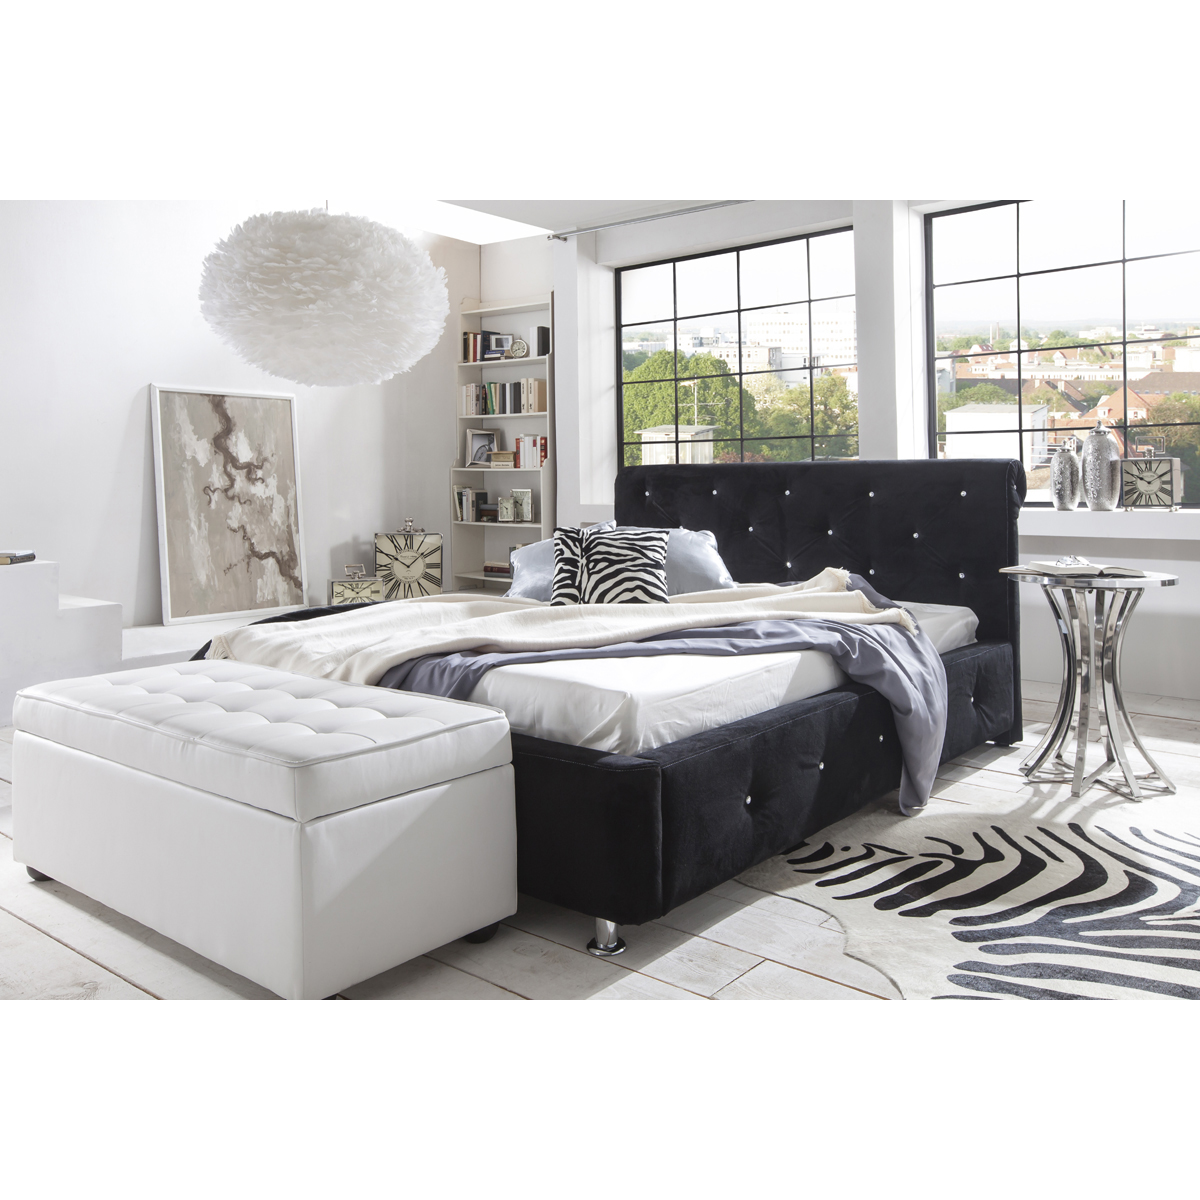 schlafzimmer mit boxspringbett einrichten. Black Bedroom Furniture Sets. Home Design Ideas